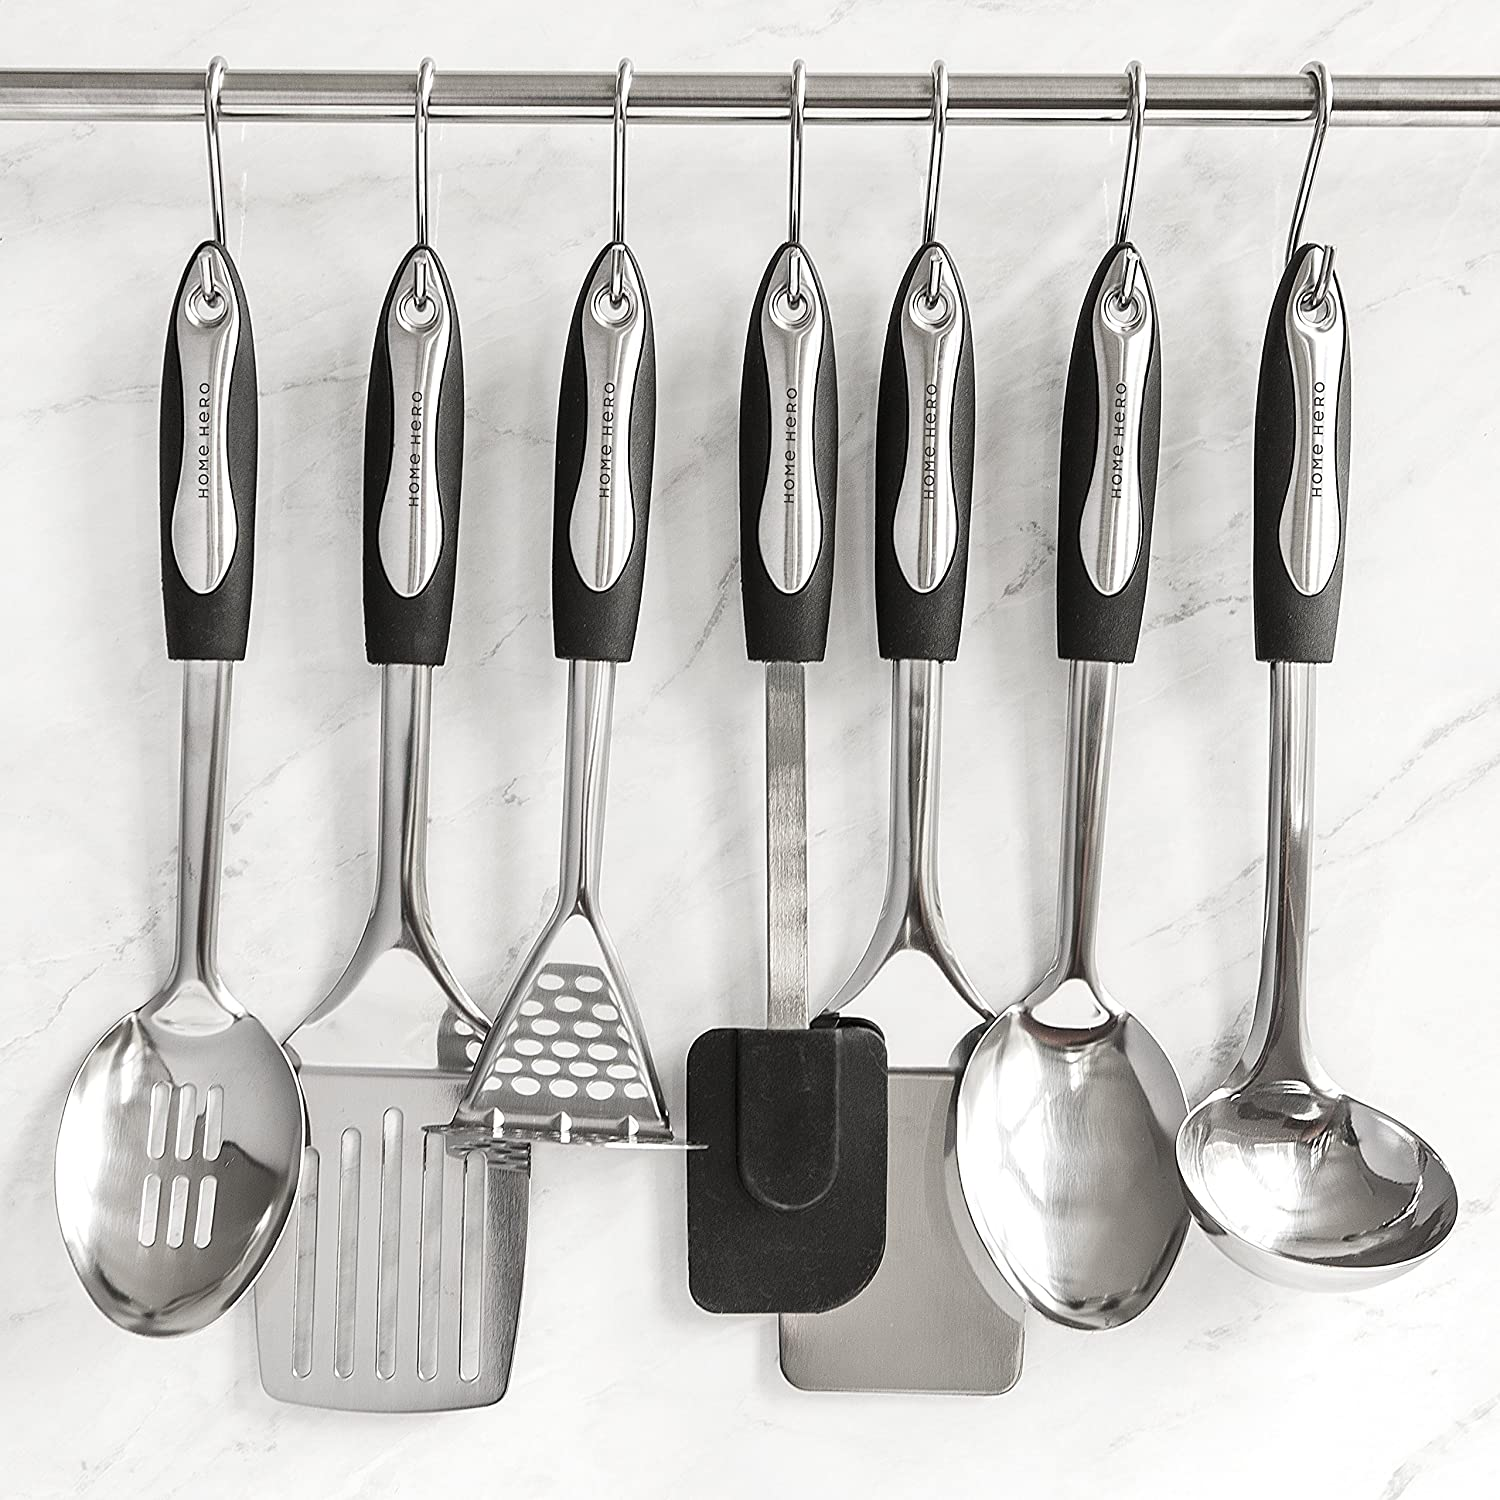 Amazon.com: Stainless Steel Kitchen Utensil Set - 25 Cooking ...